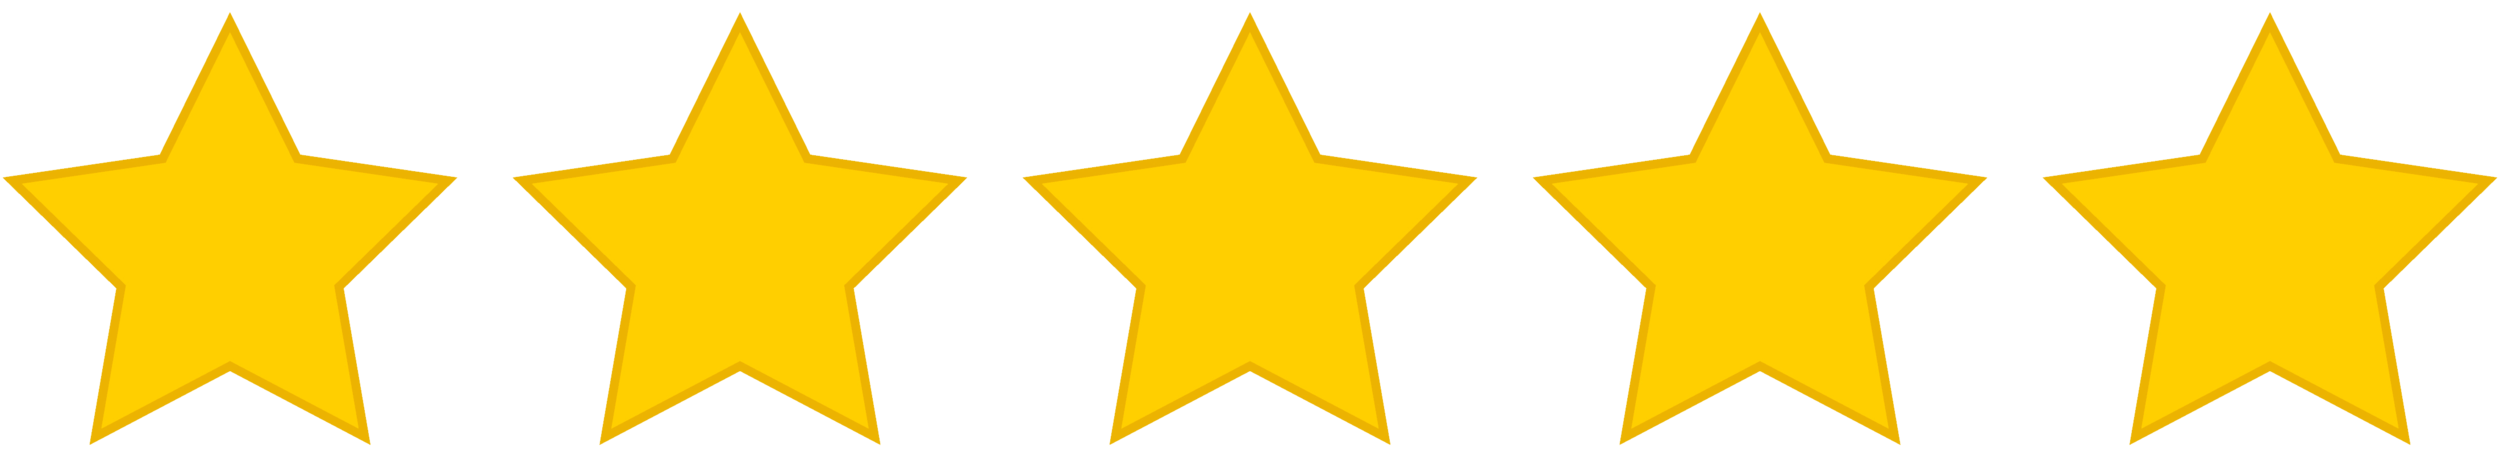 5stars.png